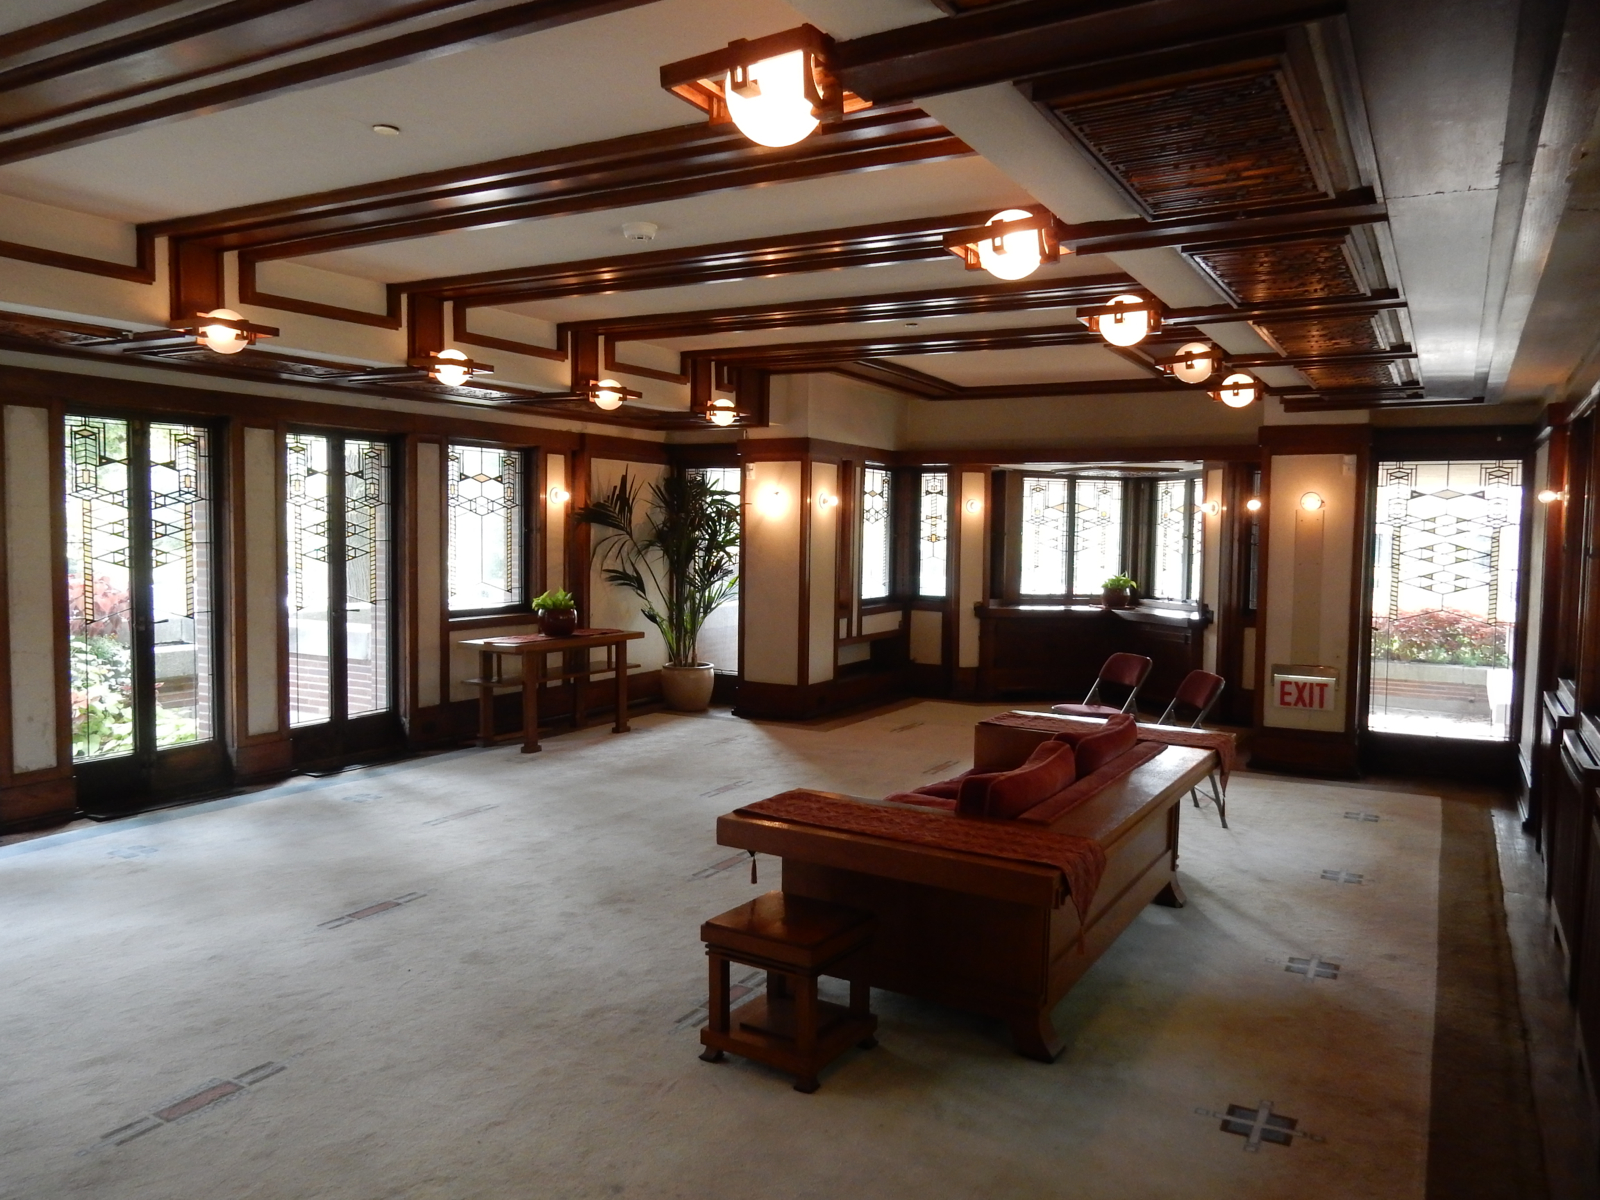 frank lloyd wright home interiors chicago in five days 23770